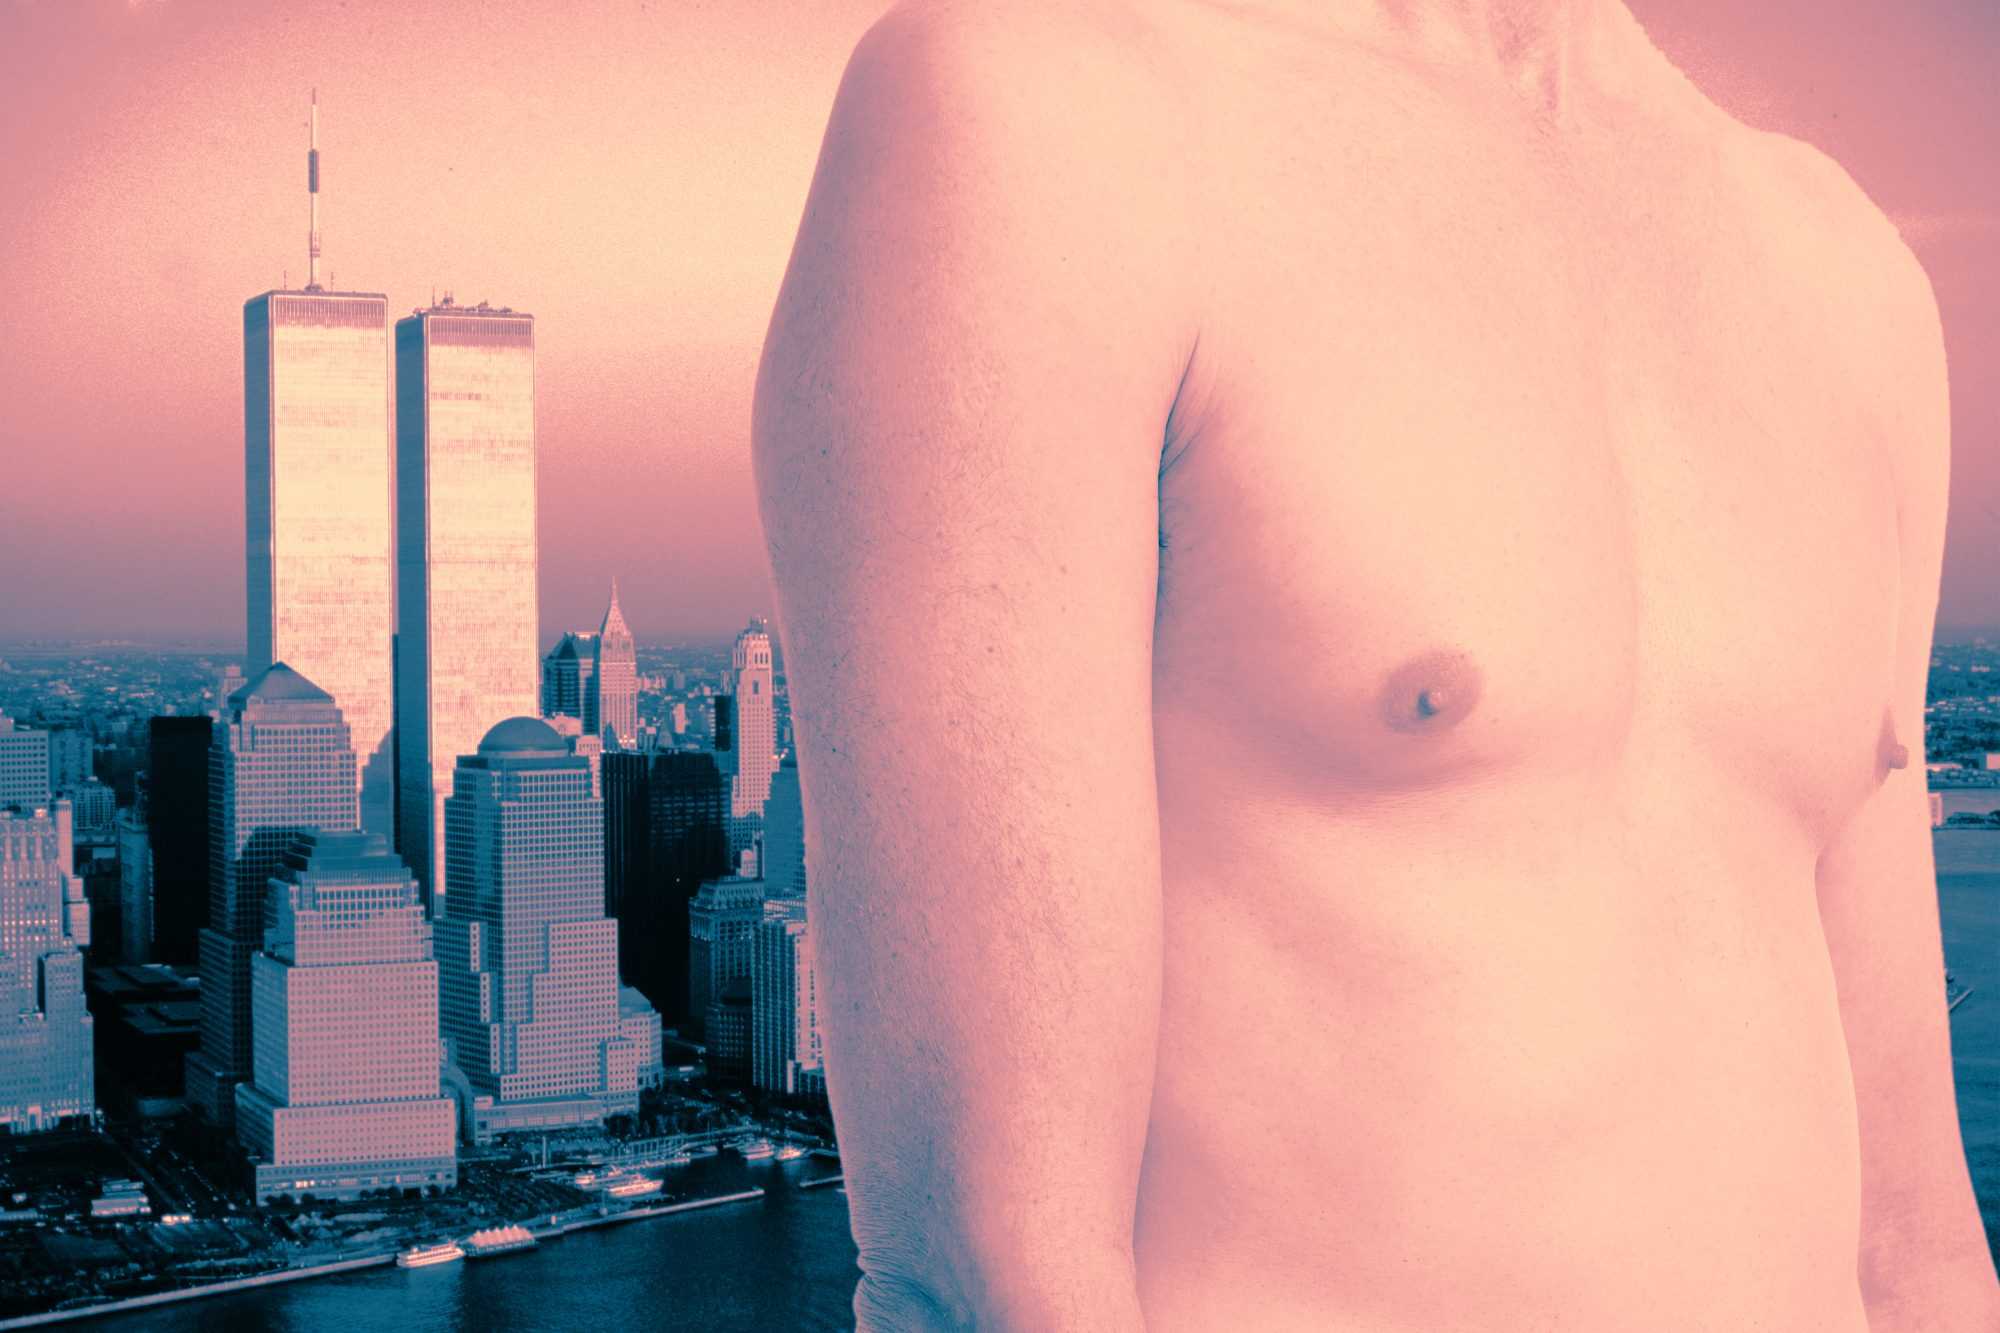 At Least 15 Men Who Spent Time Near Site of 9/11 Attacks Have Been Diagnosed with Breast Cancer